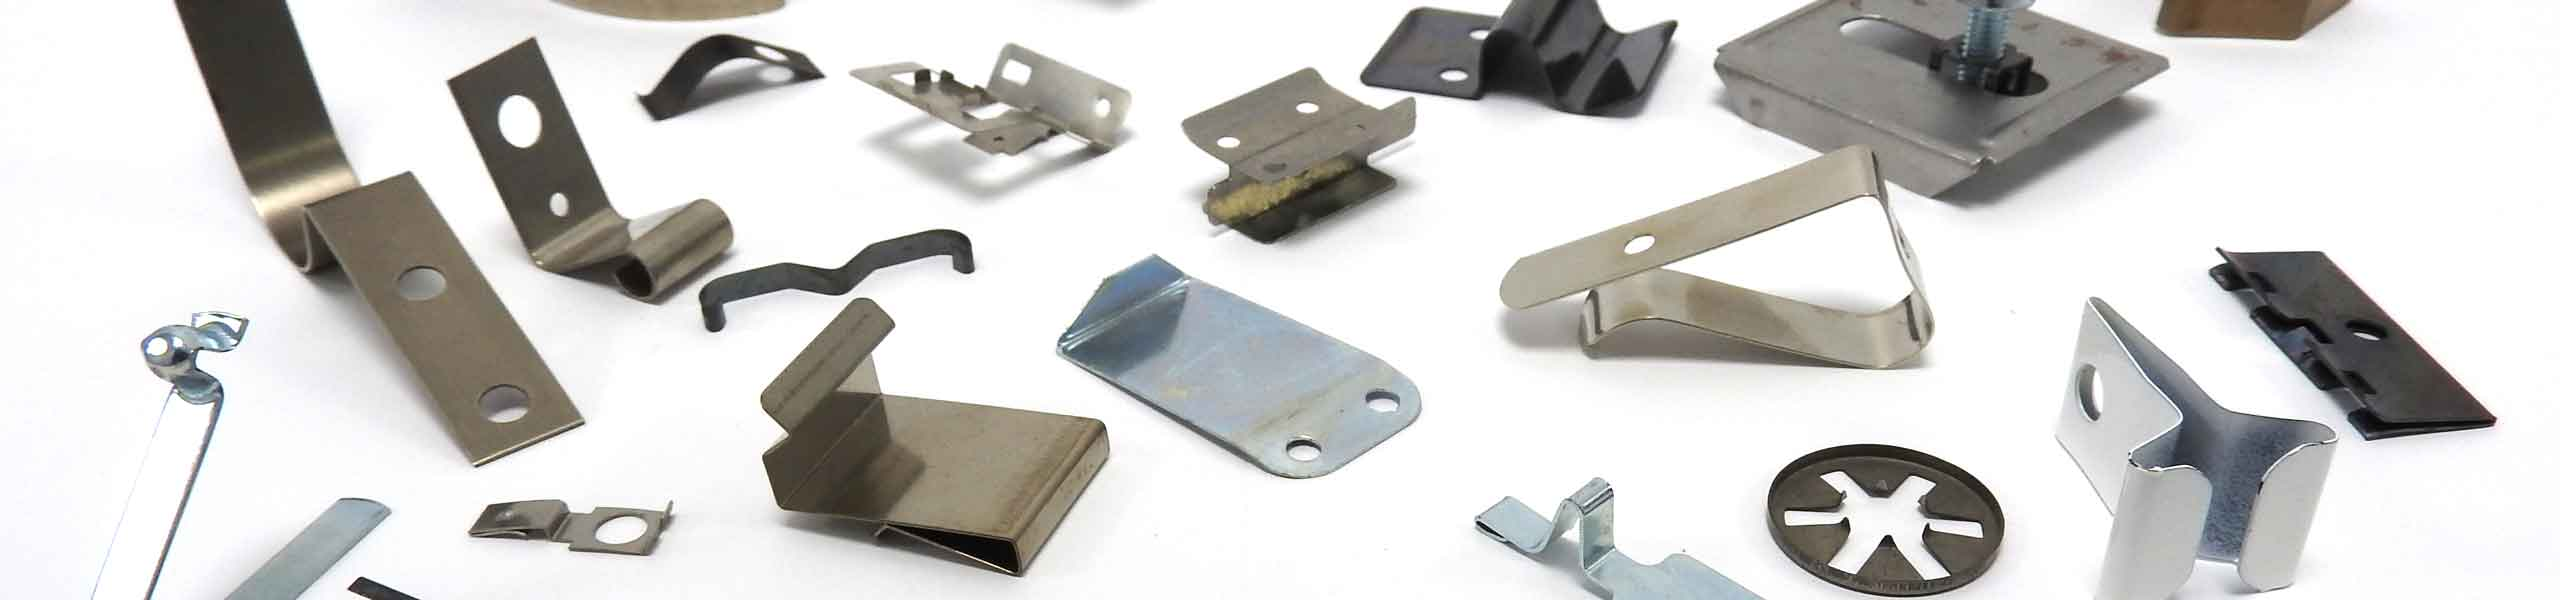 Magrenko manufacture Clips